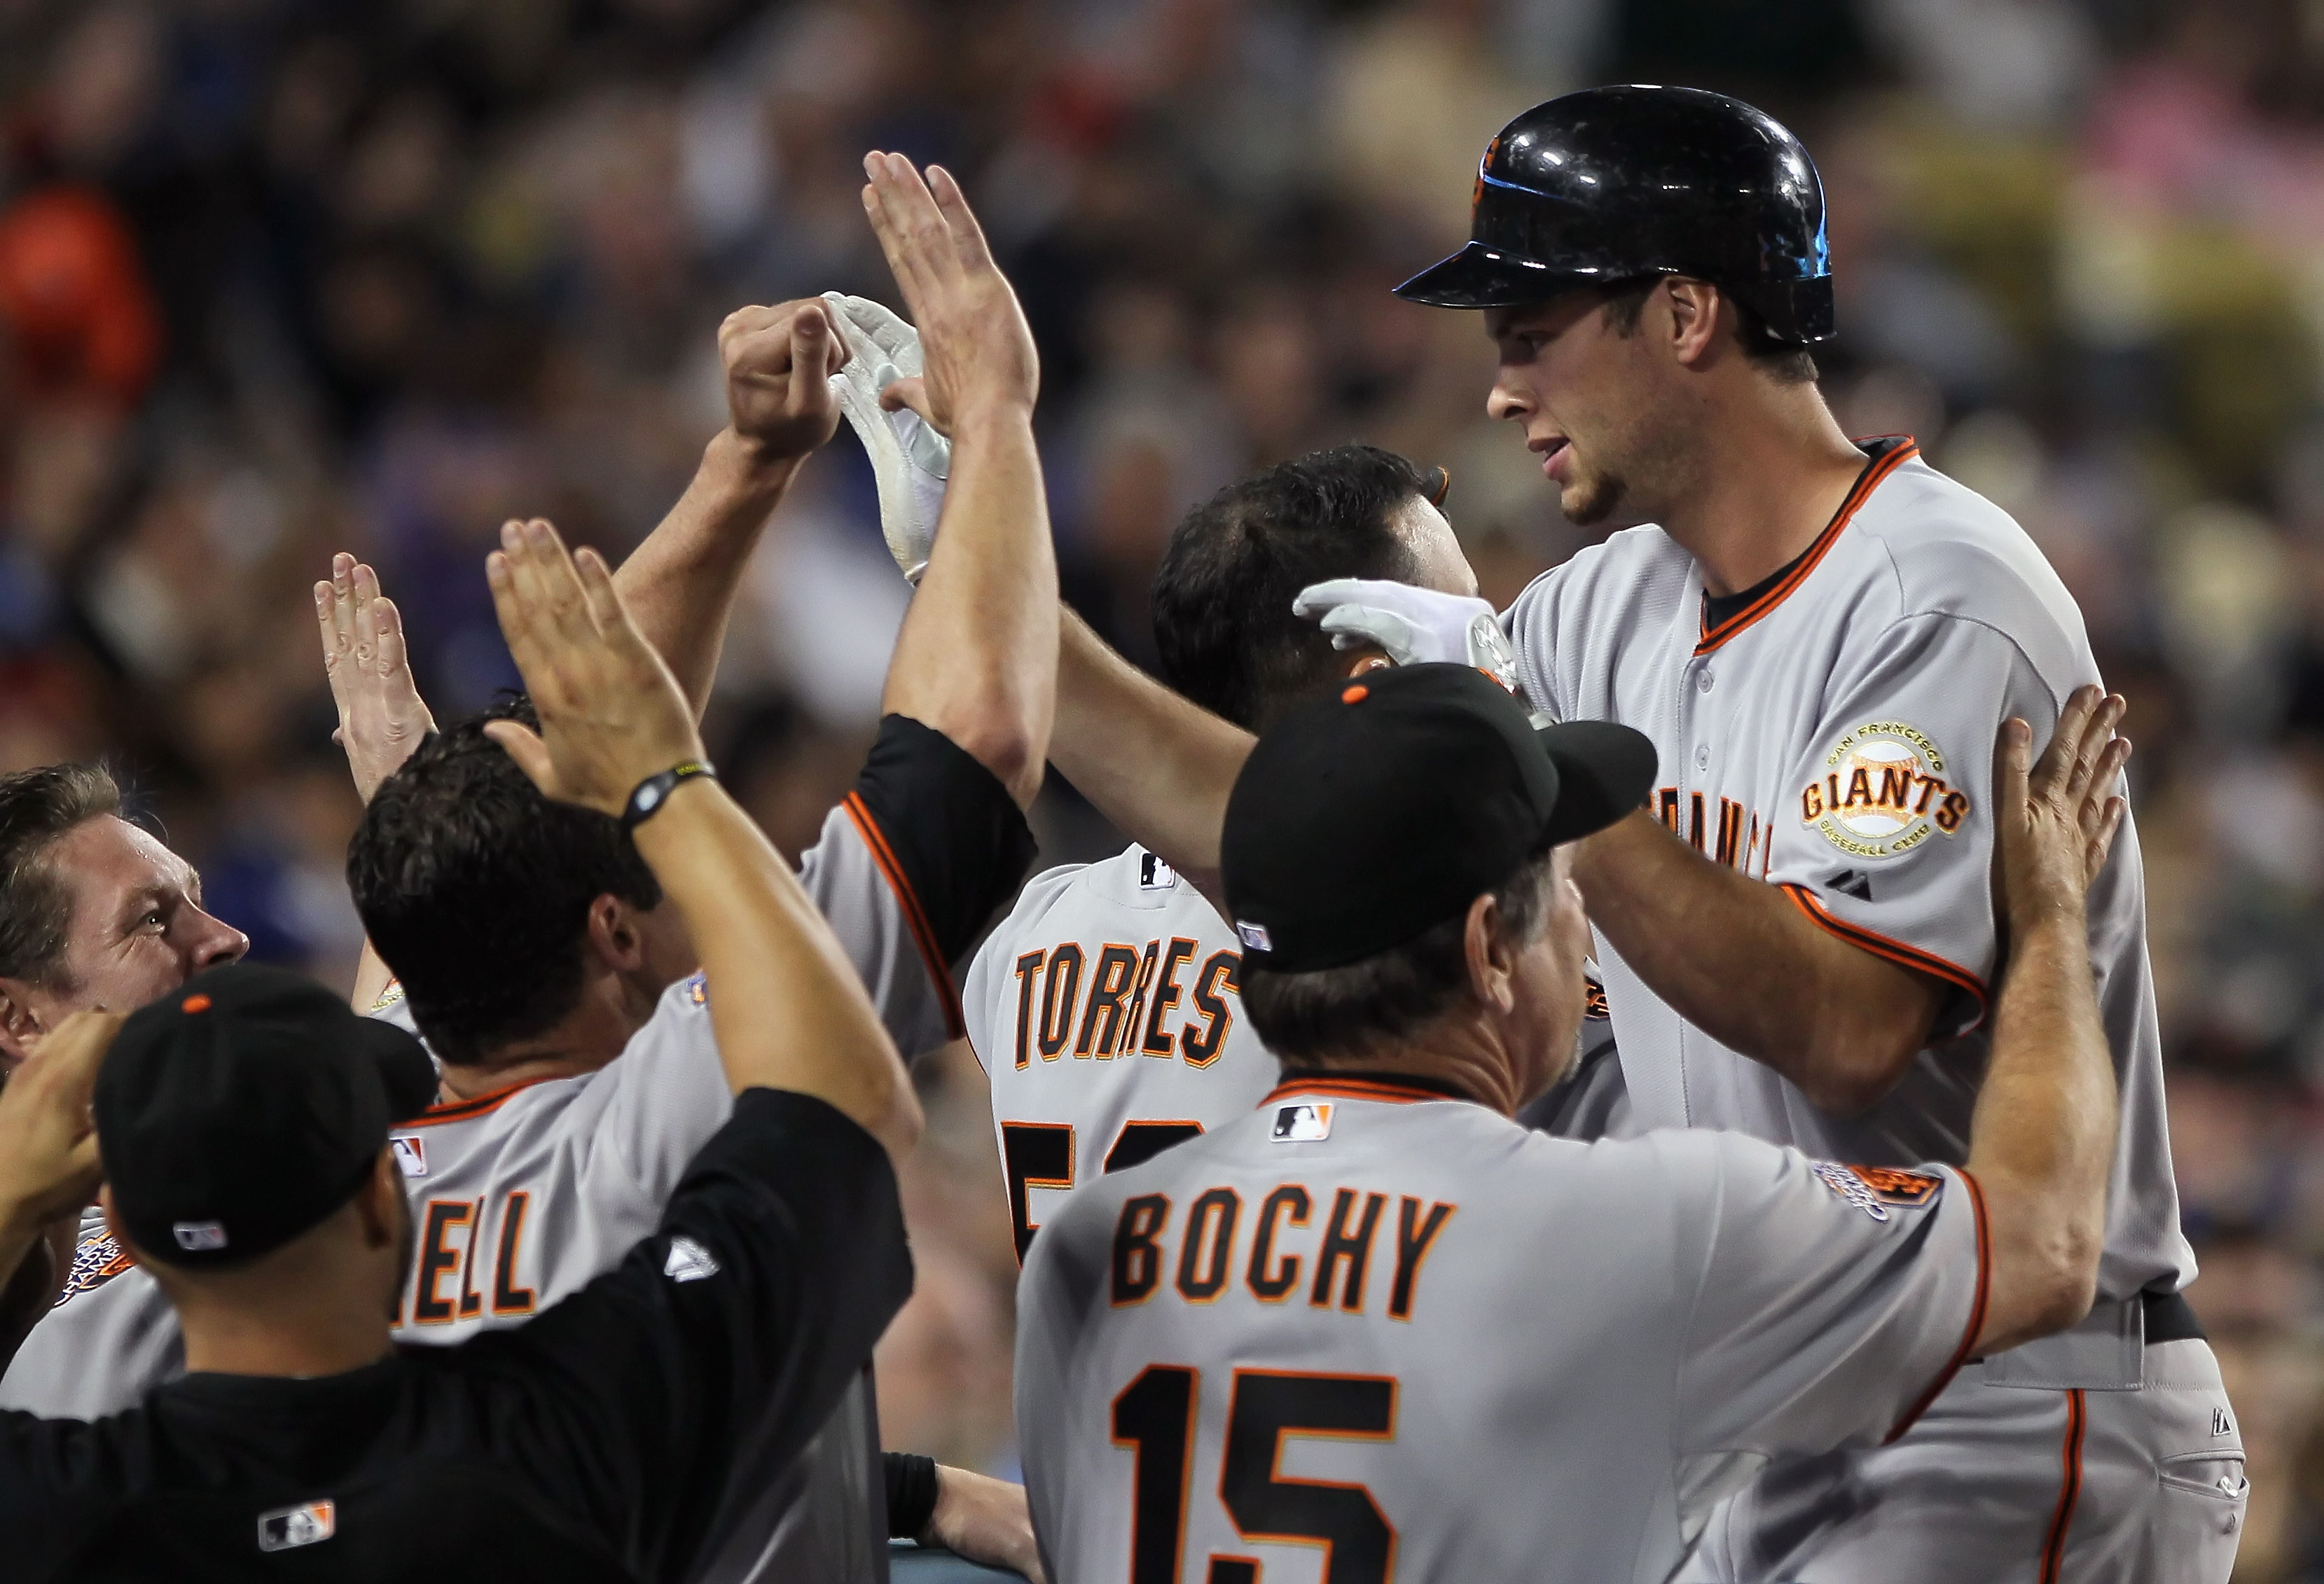 Brandon Belt was the biggest breakout star of the 2010 season, and ended up starting on Opening Day for the WS Champion Giants.